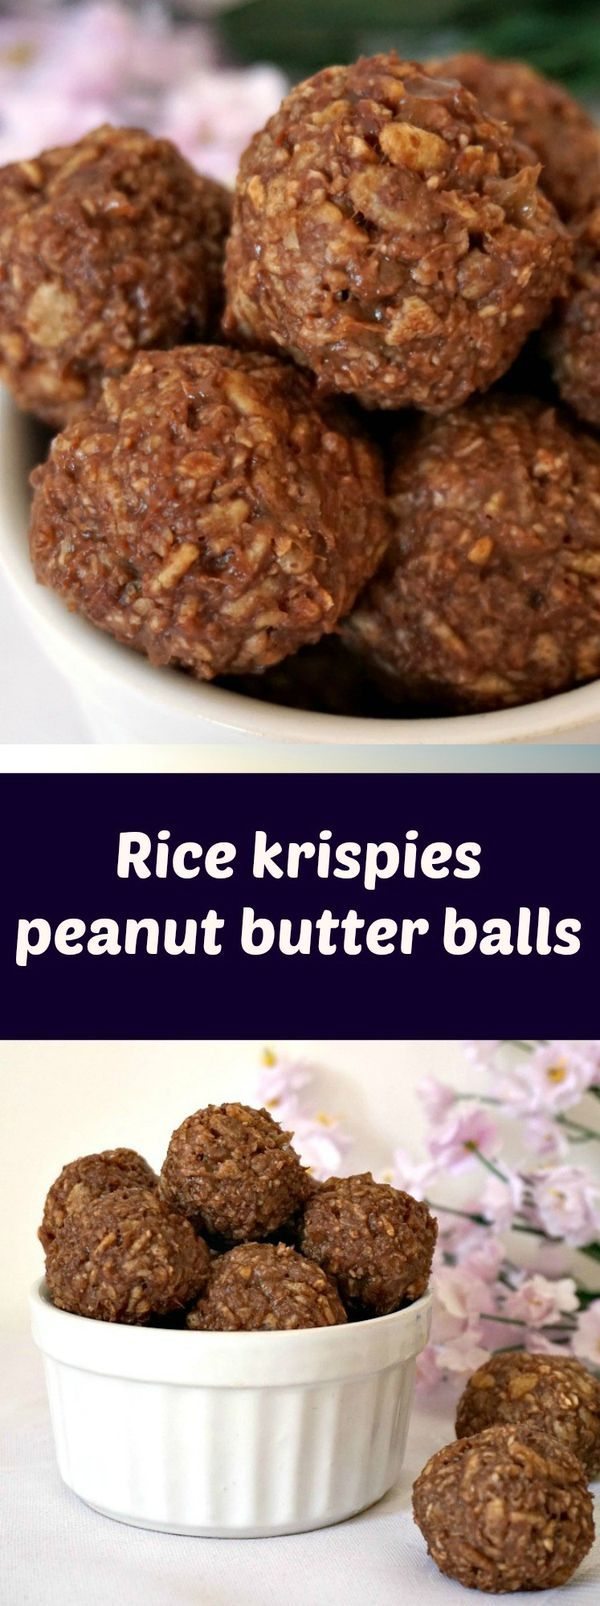 These Rice Krispies Peanut Butter Balls make a healthy snack that everyone will enjoy!(Baking Treats For Kids)